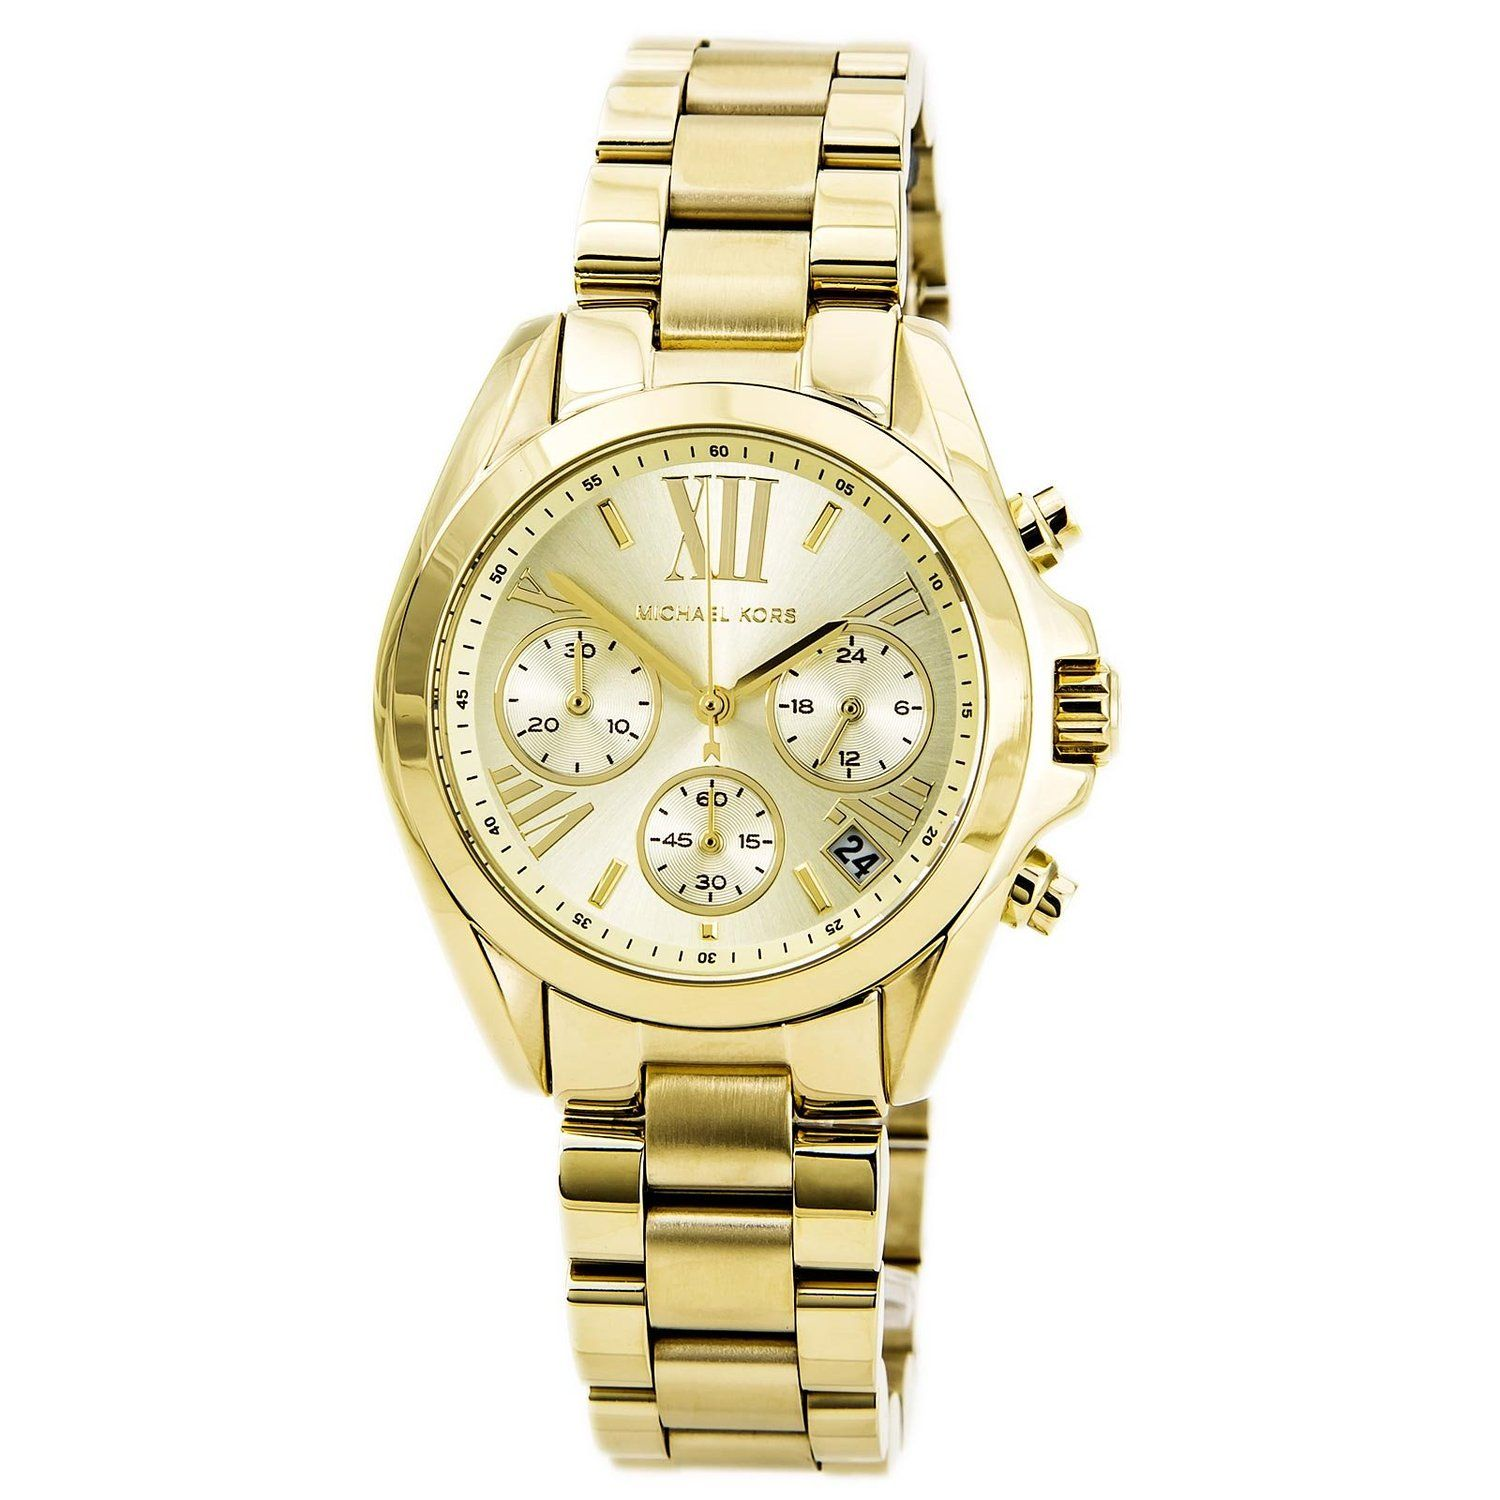 watches gold watches michael kors watches michael